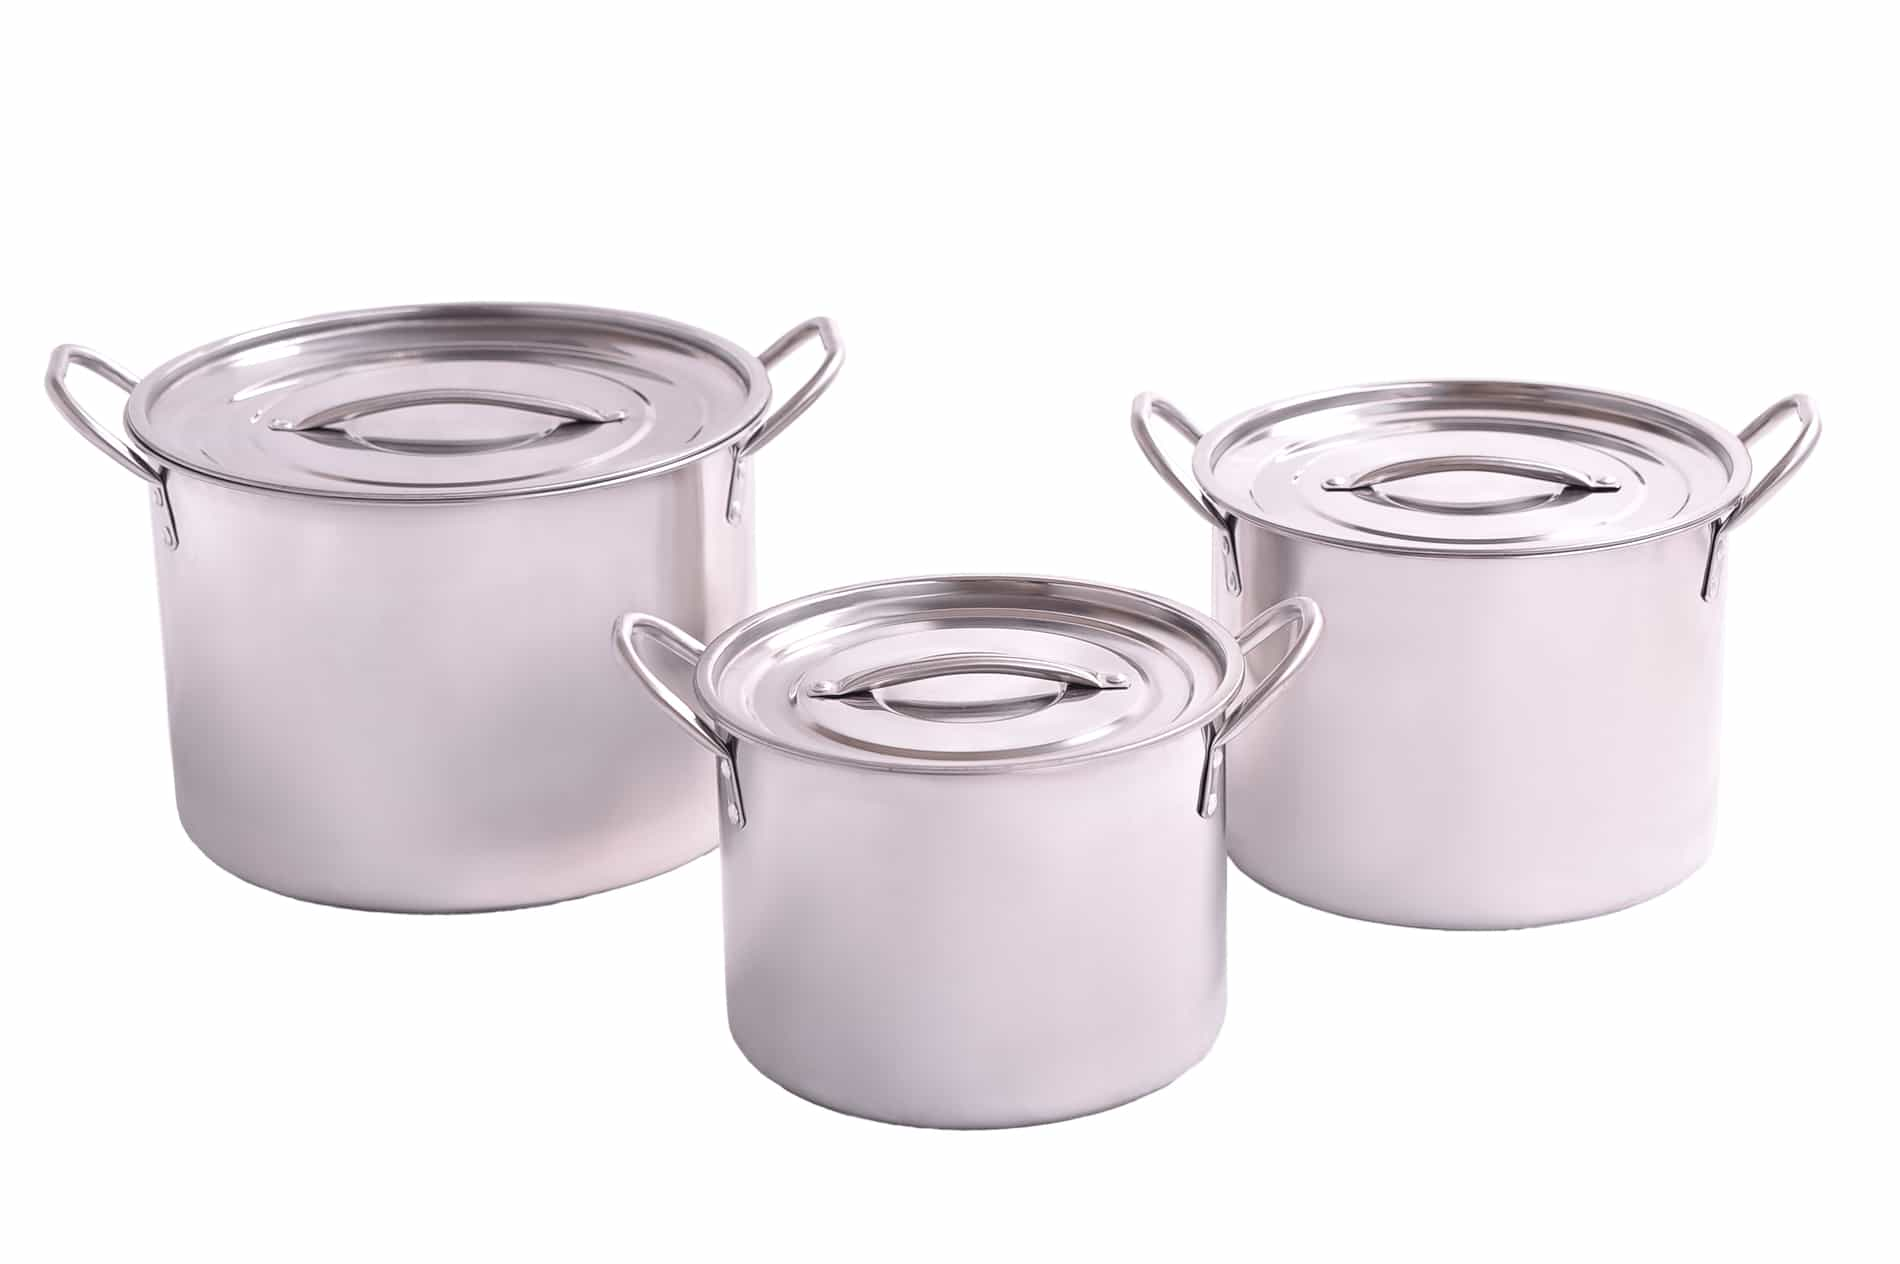 Shefu 3pcs Stainless Steel Pots (Big)